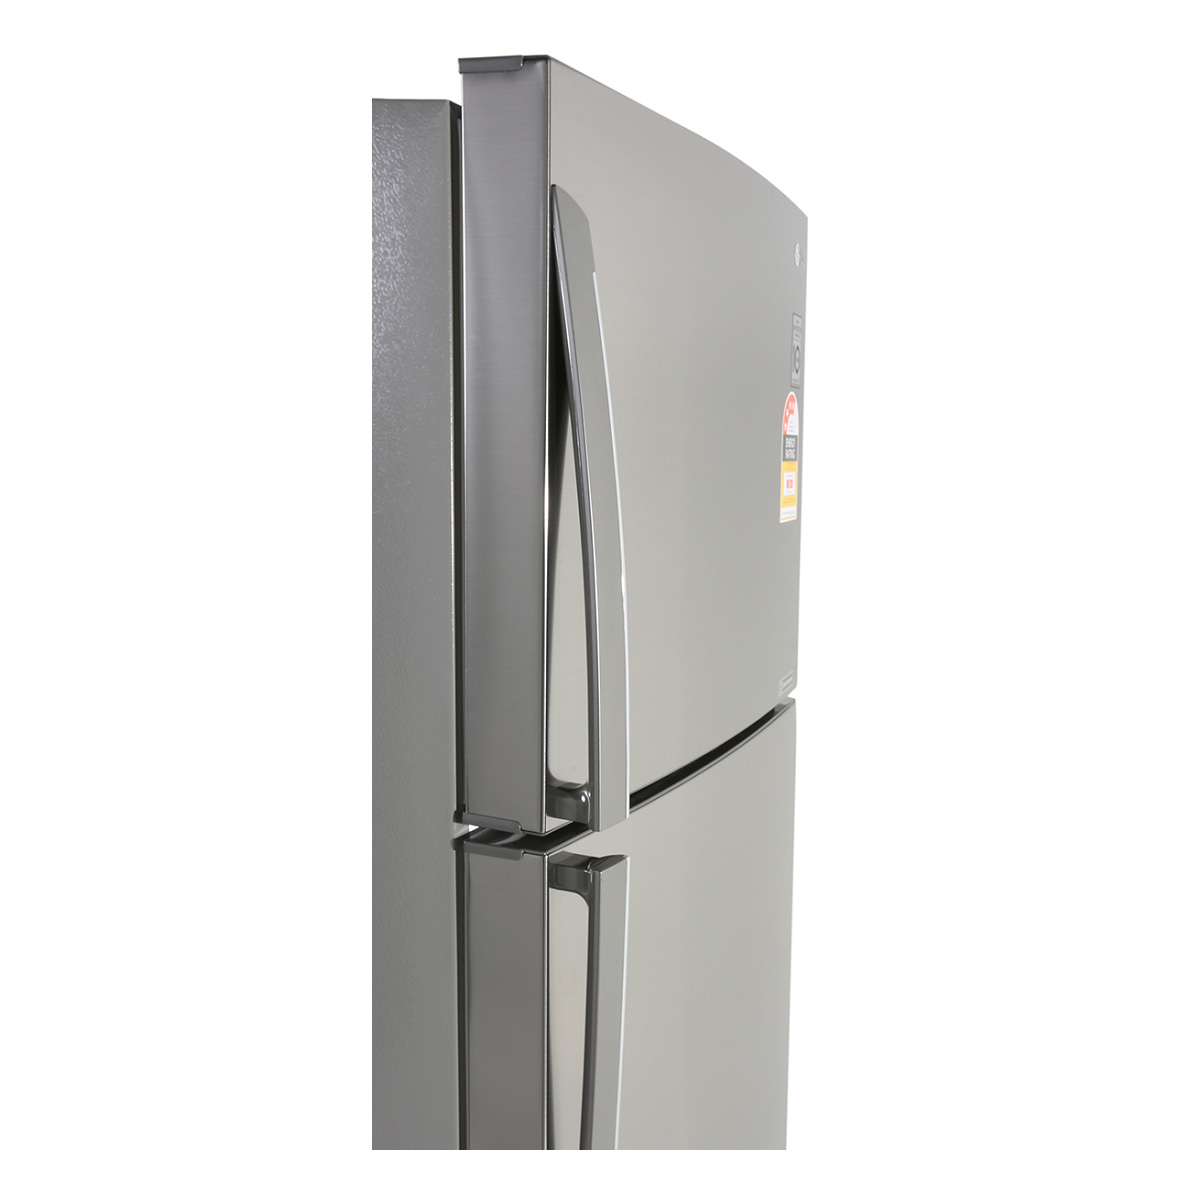 LG GT-515BPL 515L Top Mount Fridge 35598